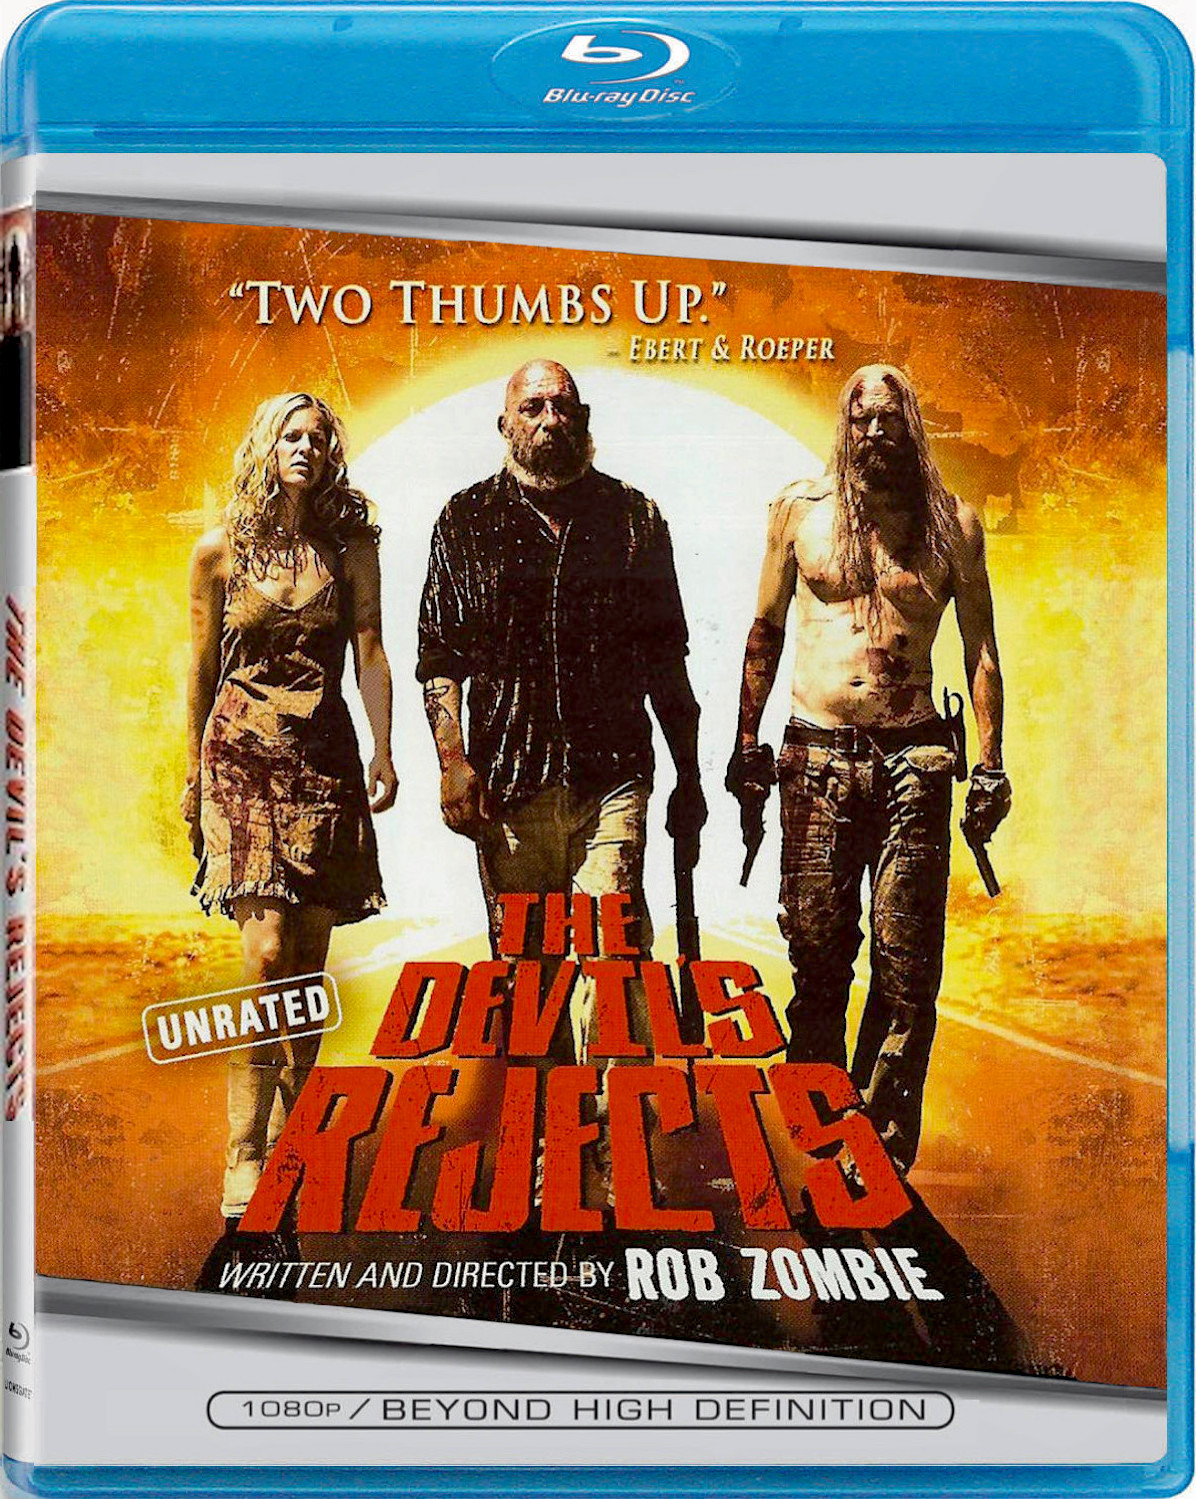 The Devil's Rejects 2005 Hindi Dual Audio 600MB BluRay 720p HEVC x265 ESubs Download